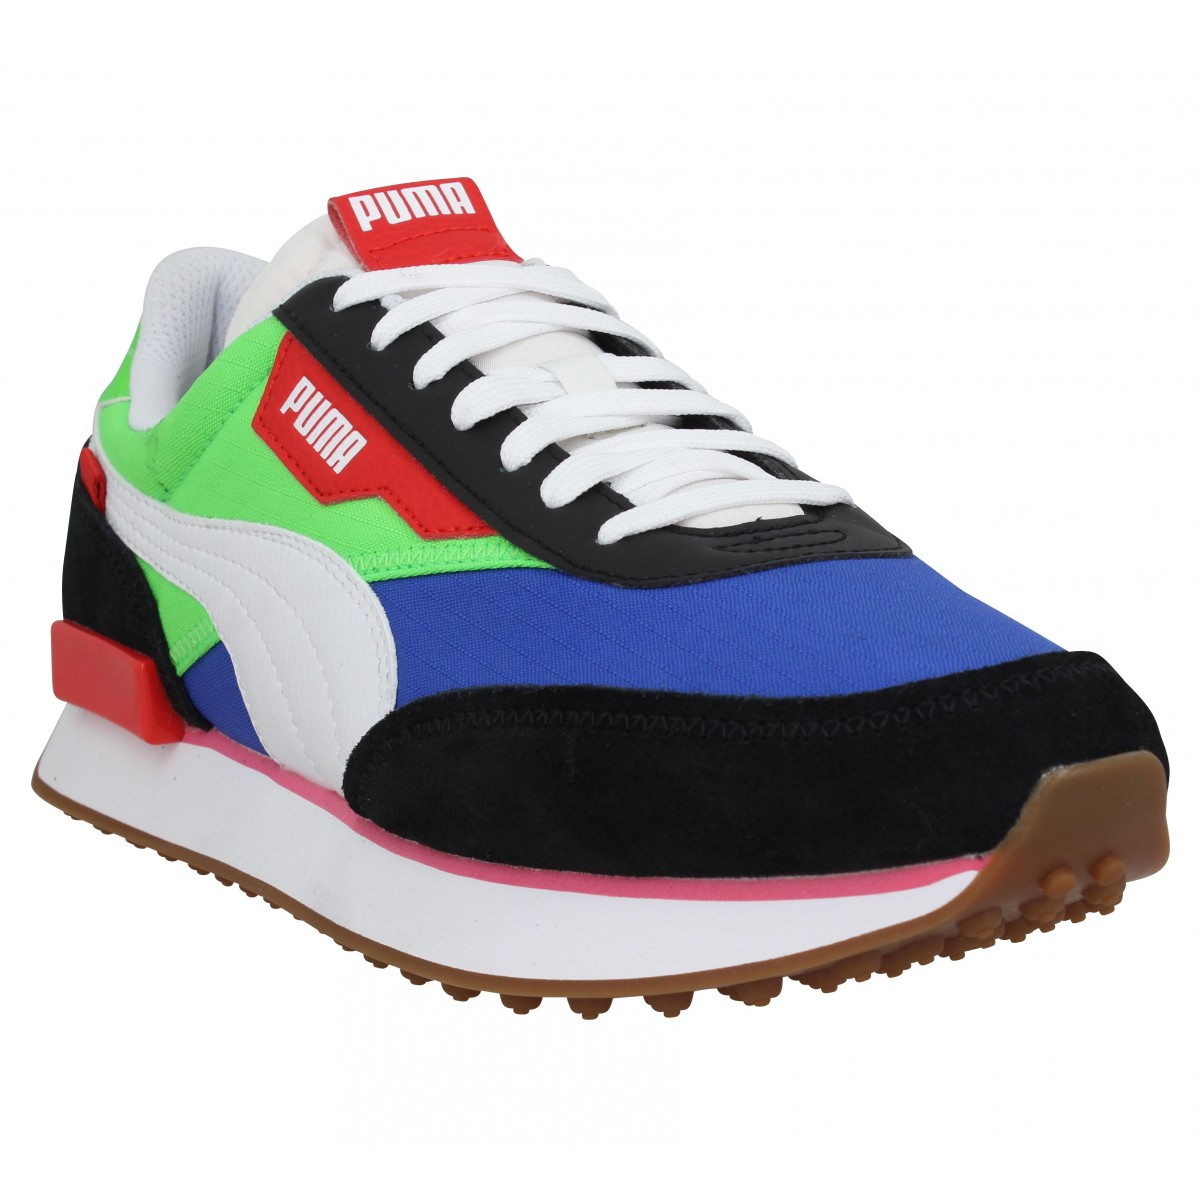 Baskets PUMA Future Rider Play On velours toile Homme Bleu Vert